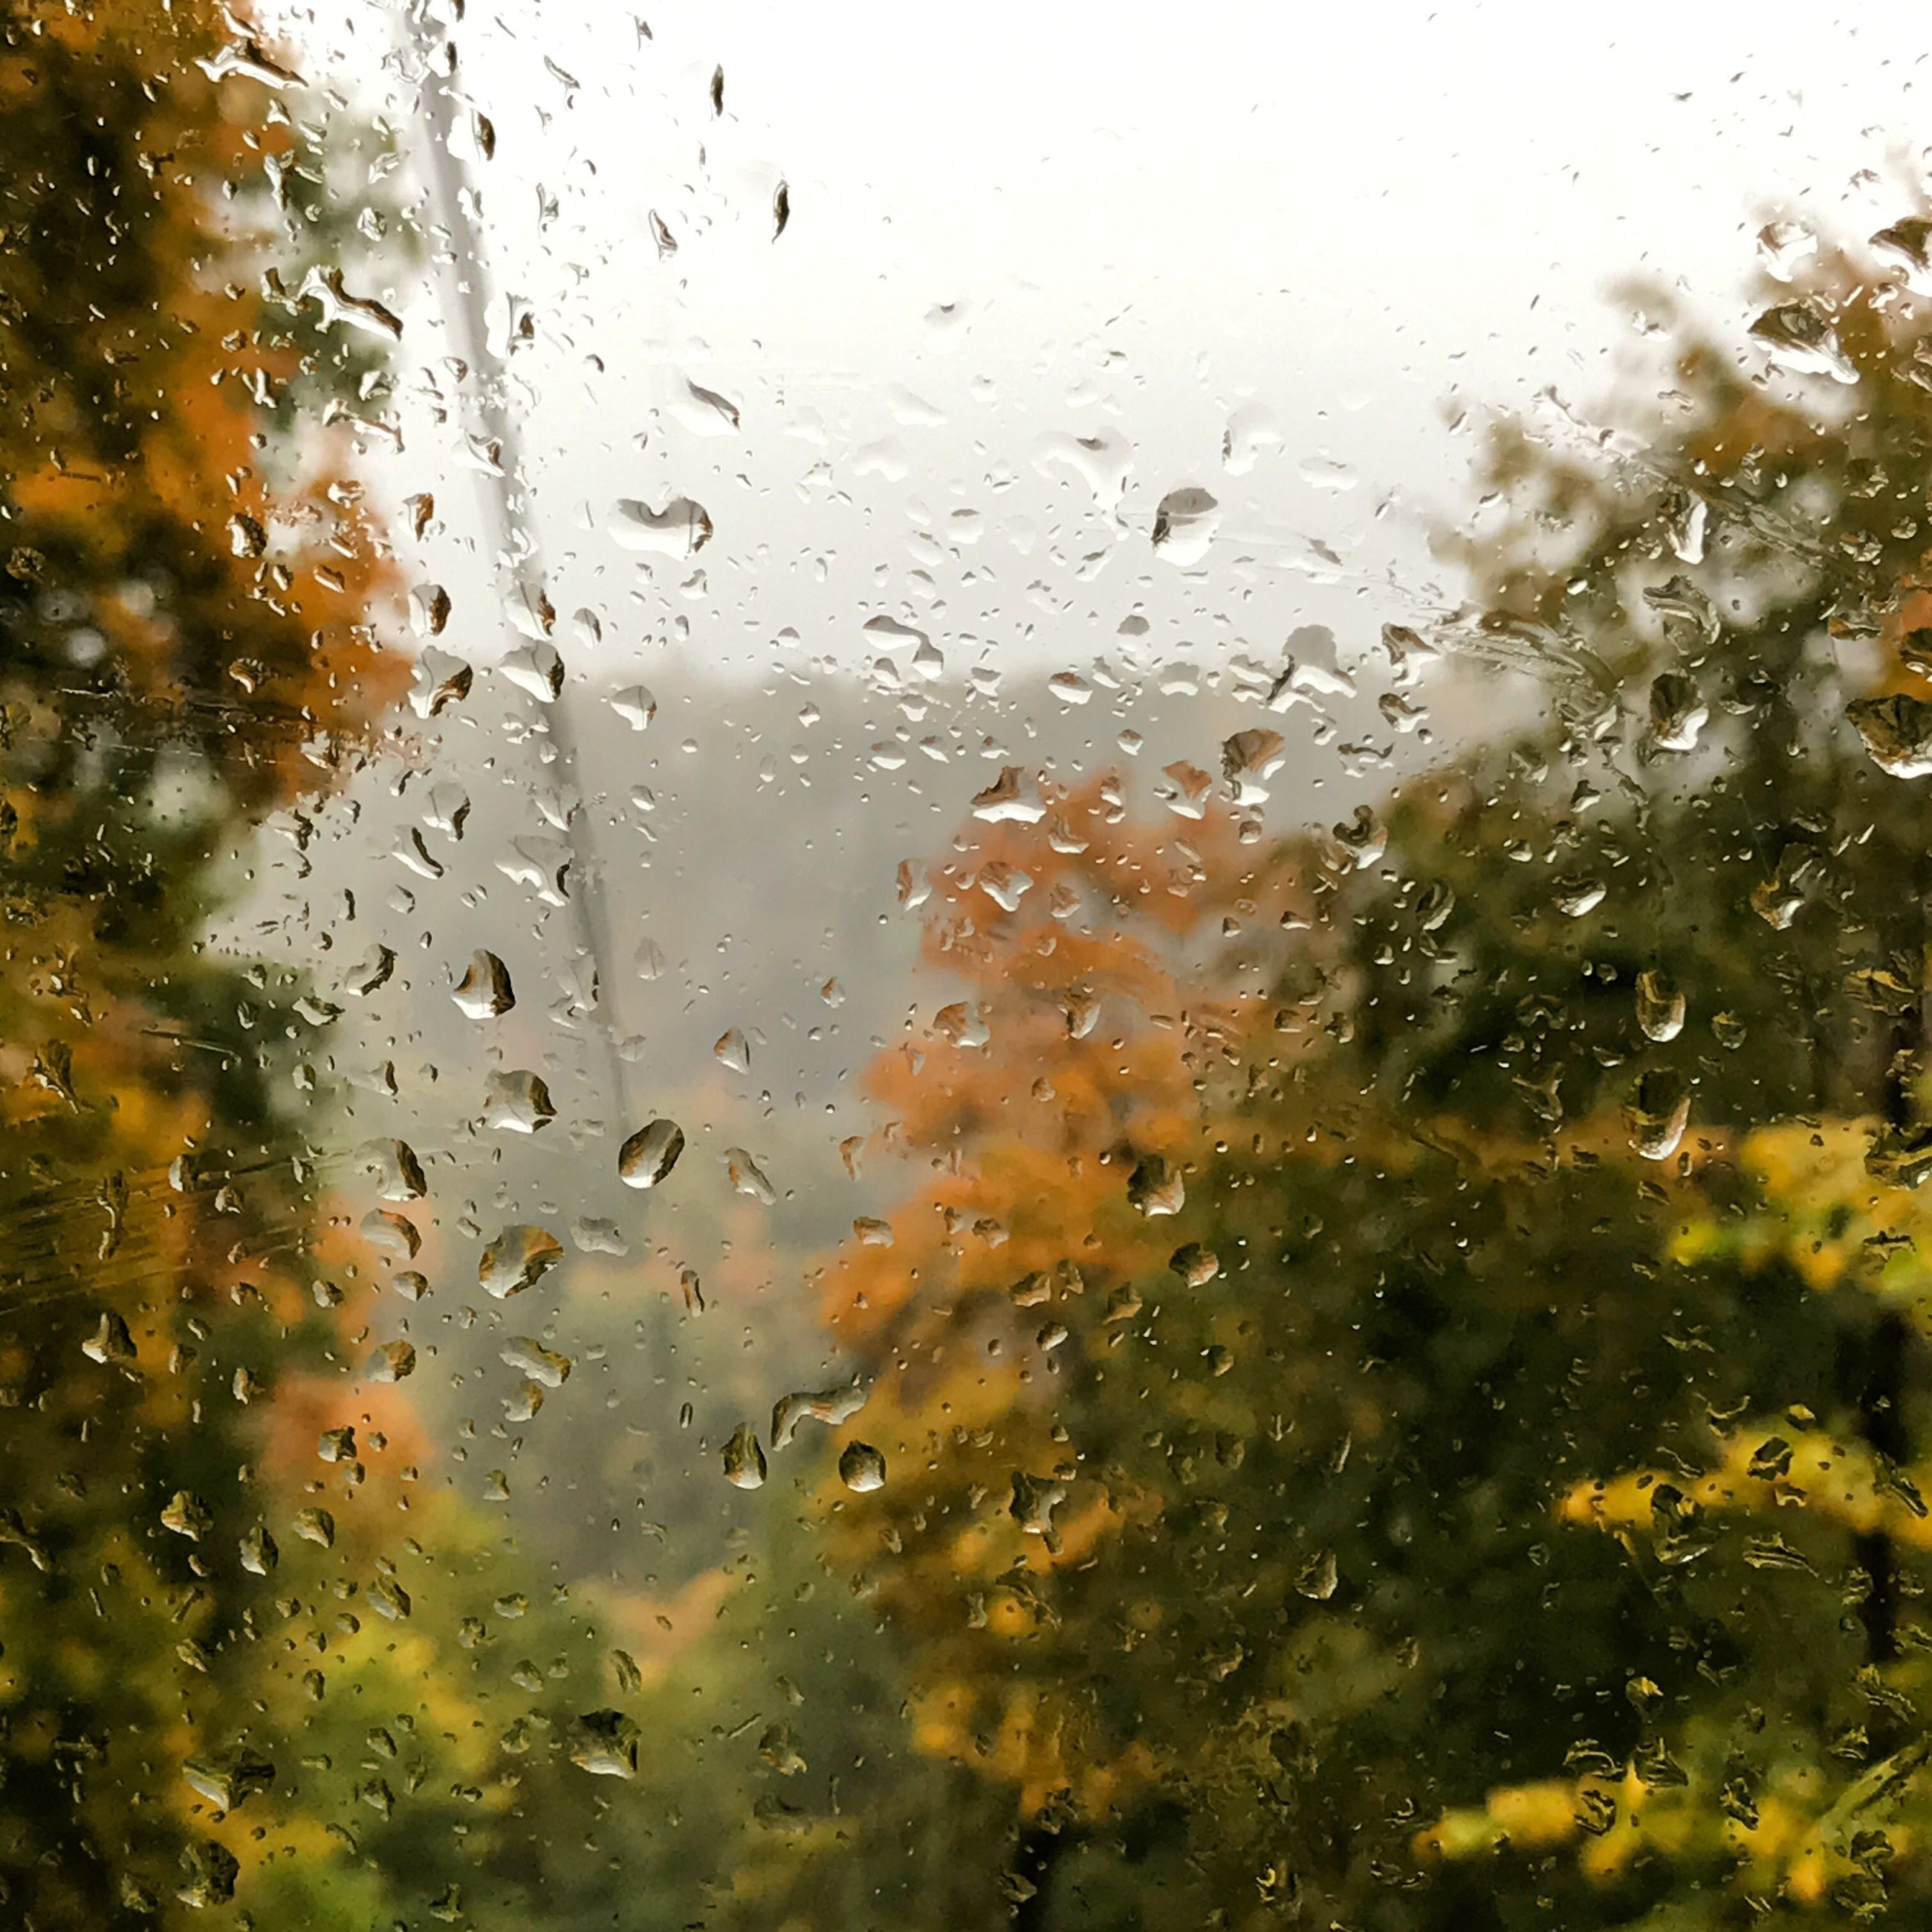 glass - material, drop, window, transparent, wet, weather, water, backgrounds, rain, close-up, condensation, no people, full frame, raindrop, day, tree, sky, rainy season, nature, indoors